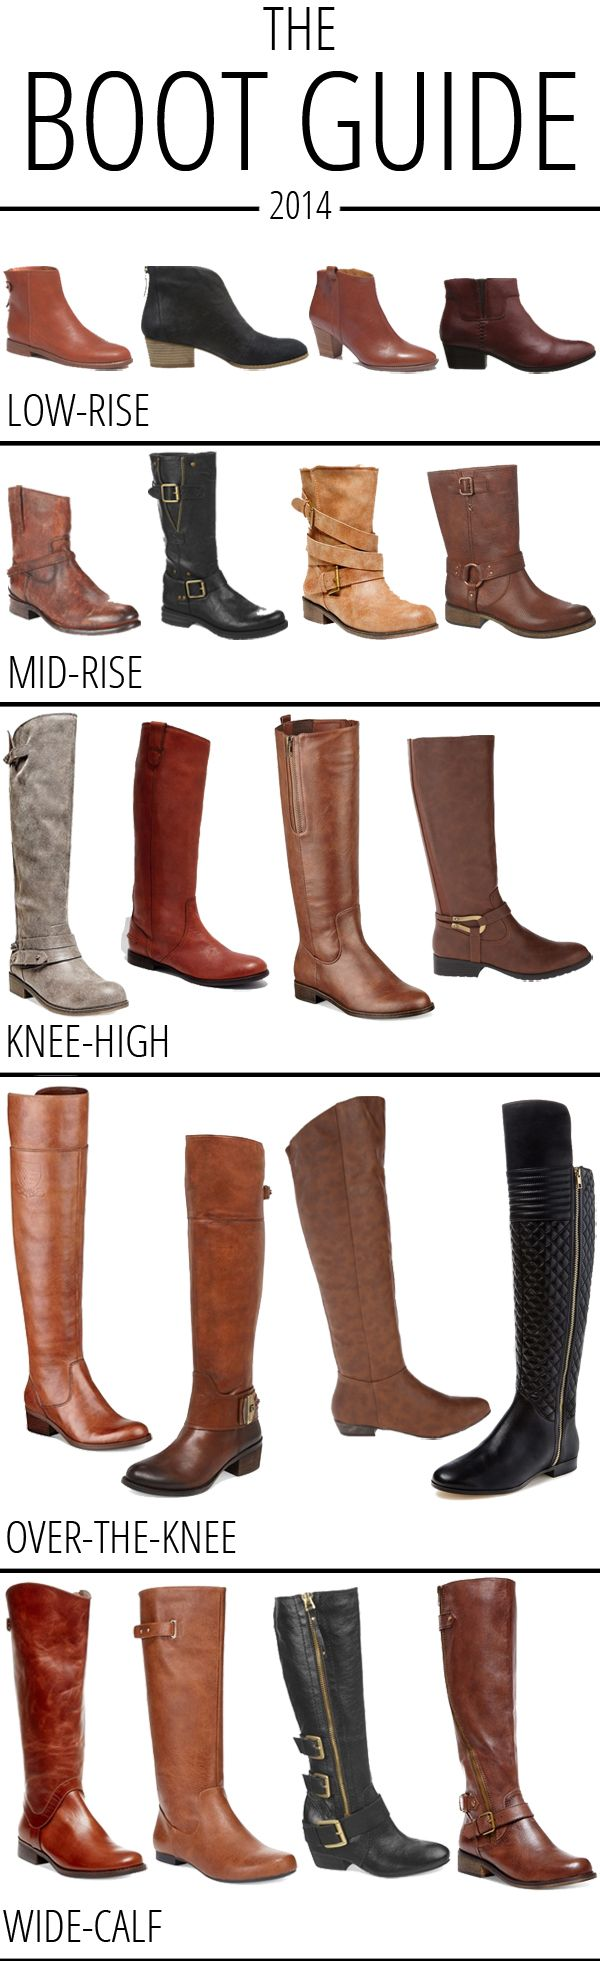 The Boot Guide 2015: favorite low-rise, mid-rise, knee-high, over-the-knee and wide-calf boots!